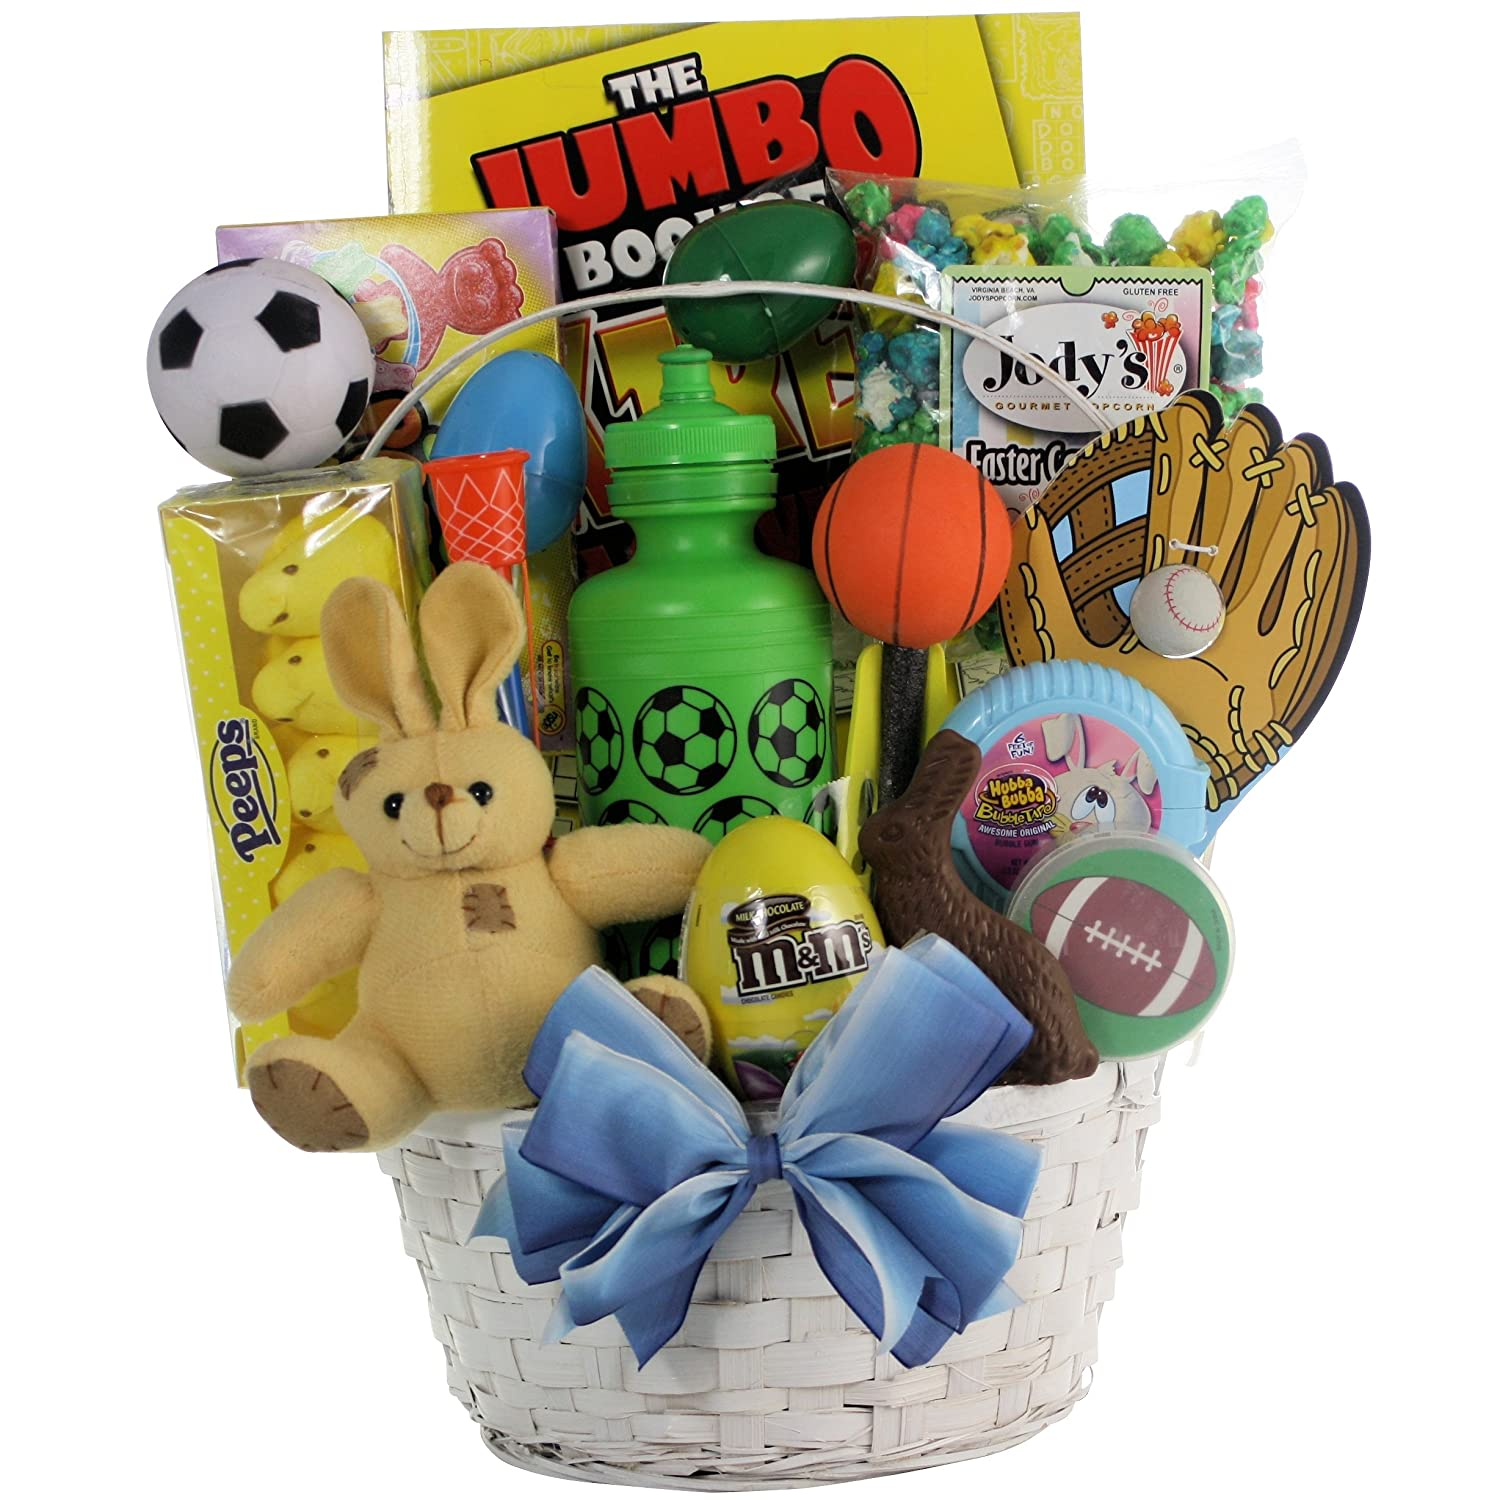 Greatarrivals gift baskets egg streme sports easter gift basket greatarrivals gift baskets egg streme sports easter gift basket for boys 3 pound amazon grocery gourmet food negle Gallery